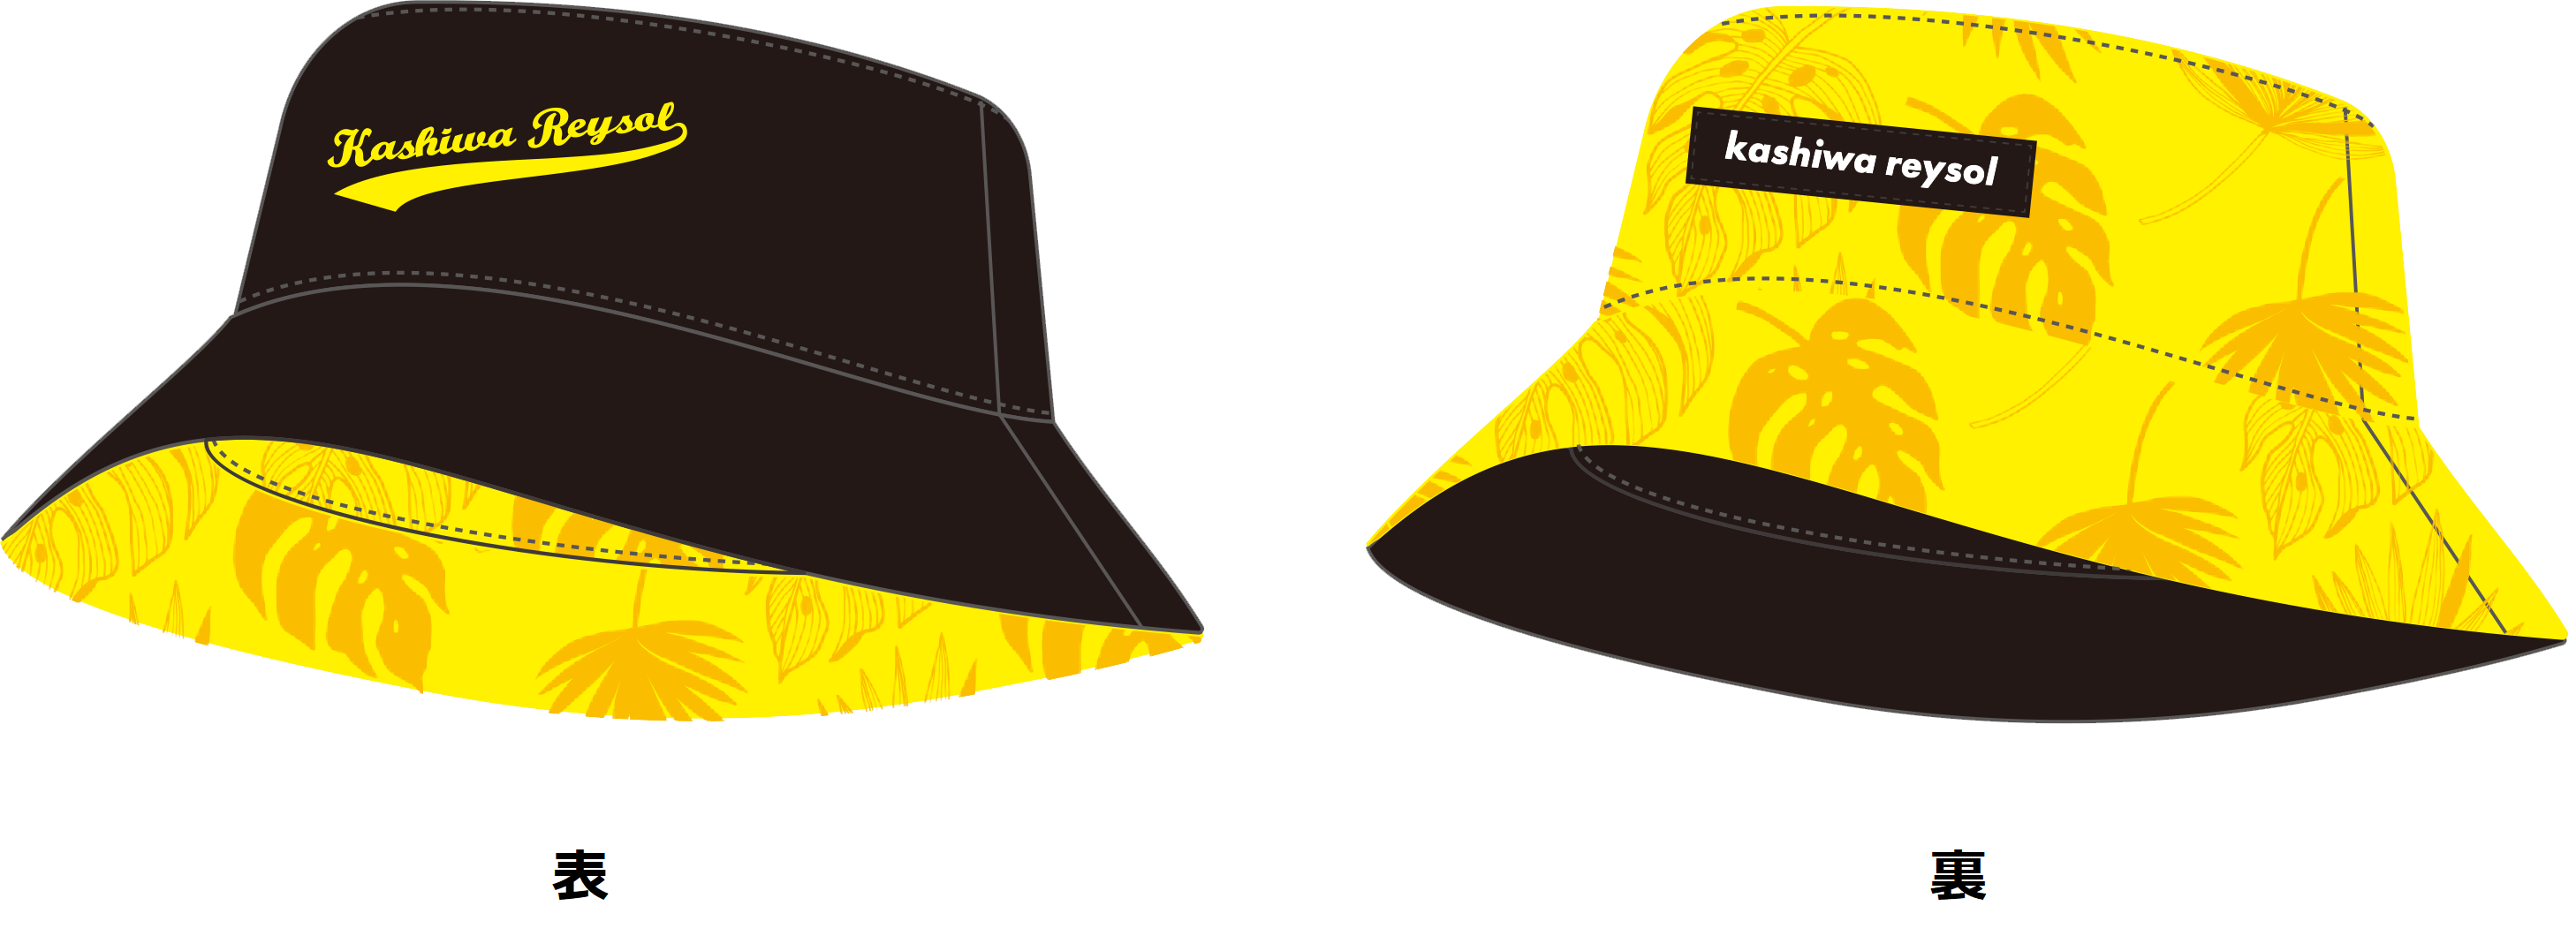 0627hat.png